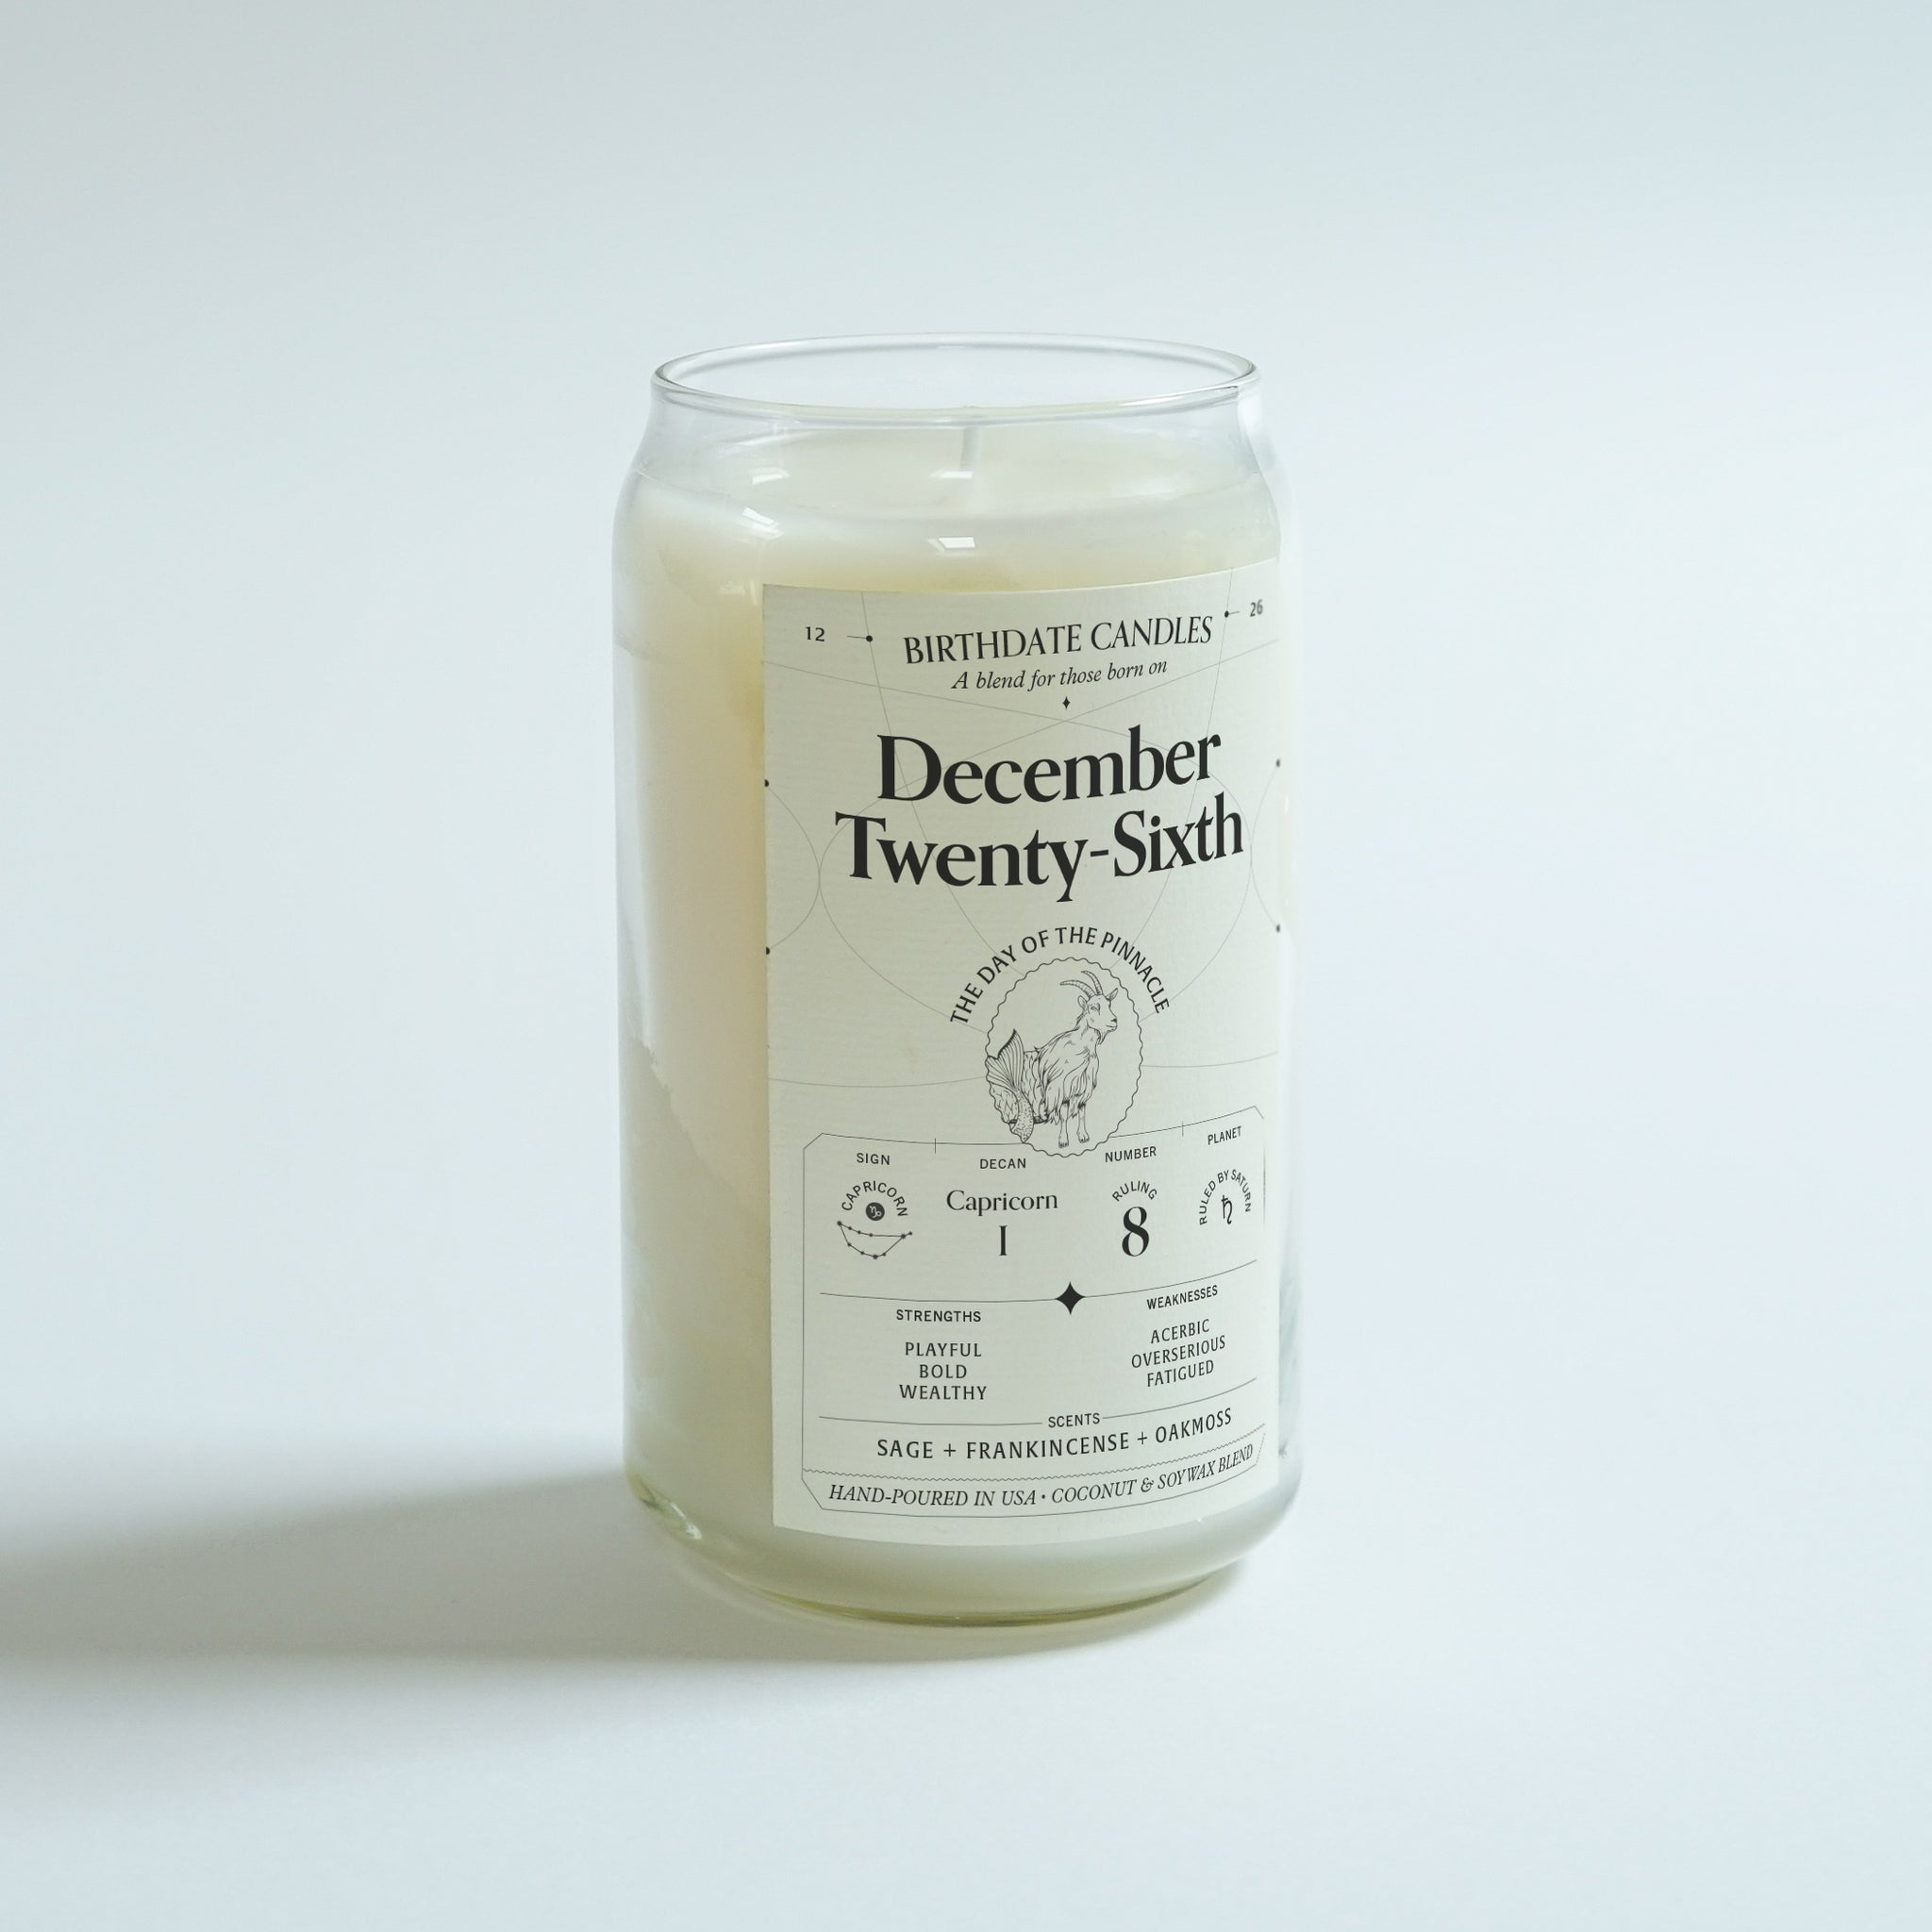 The December Twenty-Sixth Candle